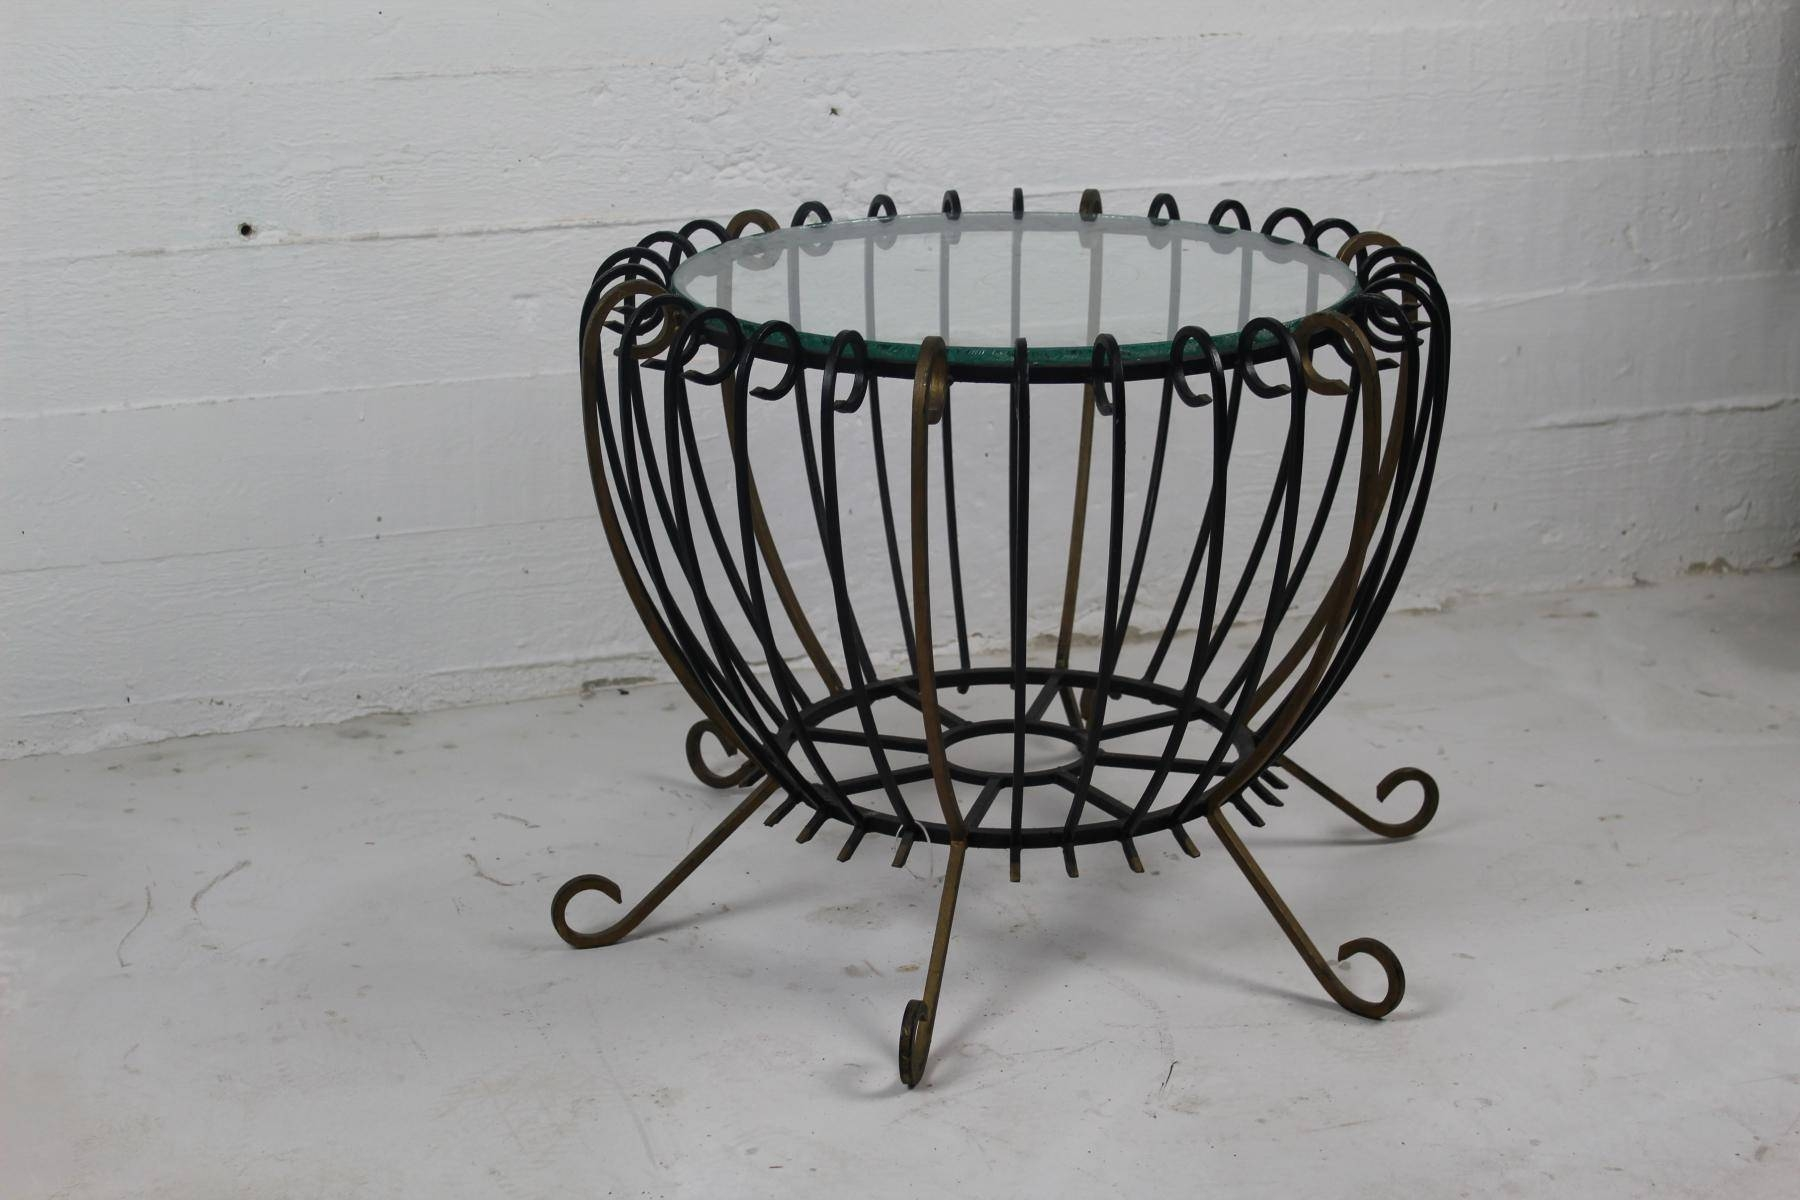 Vintage Wrought Iron Coffee Table For Sale At Pamono regarding Wrought Iron Coffee Tables (Image 17 of 30)